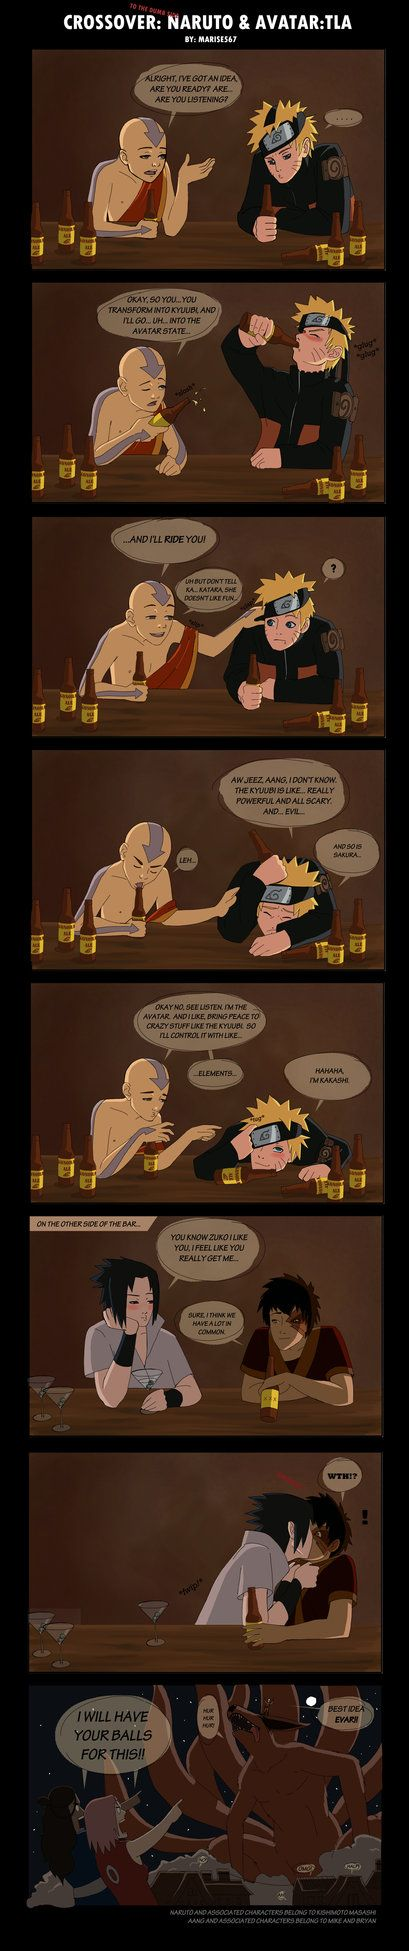 Crossover: Naruto and ATLA by ~Marise567 on deviantART Aang: I have an Idea... Naruto: I don't know... haha this made me laugh:o)